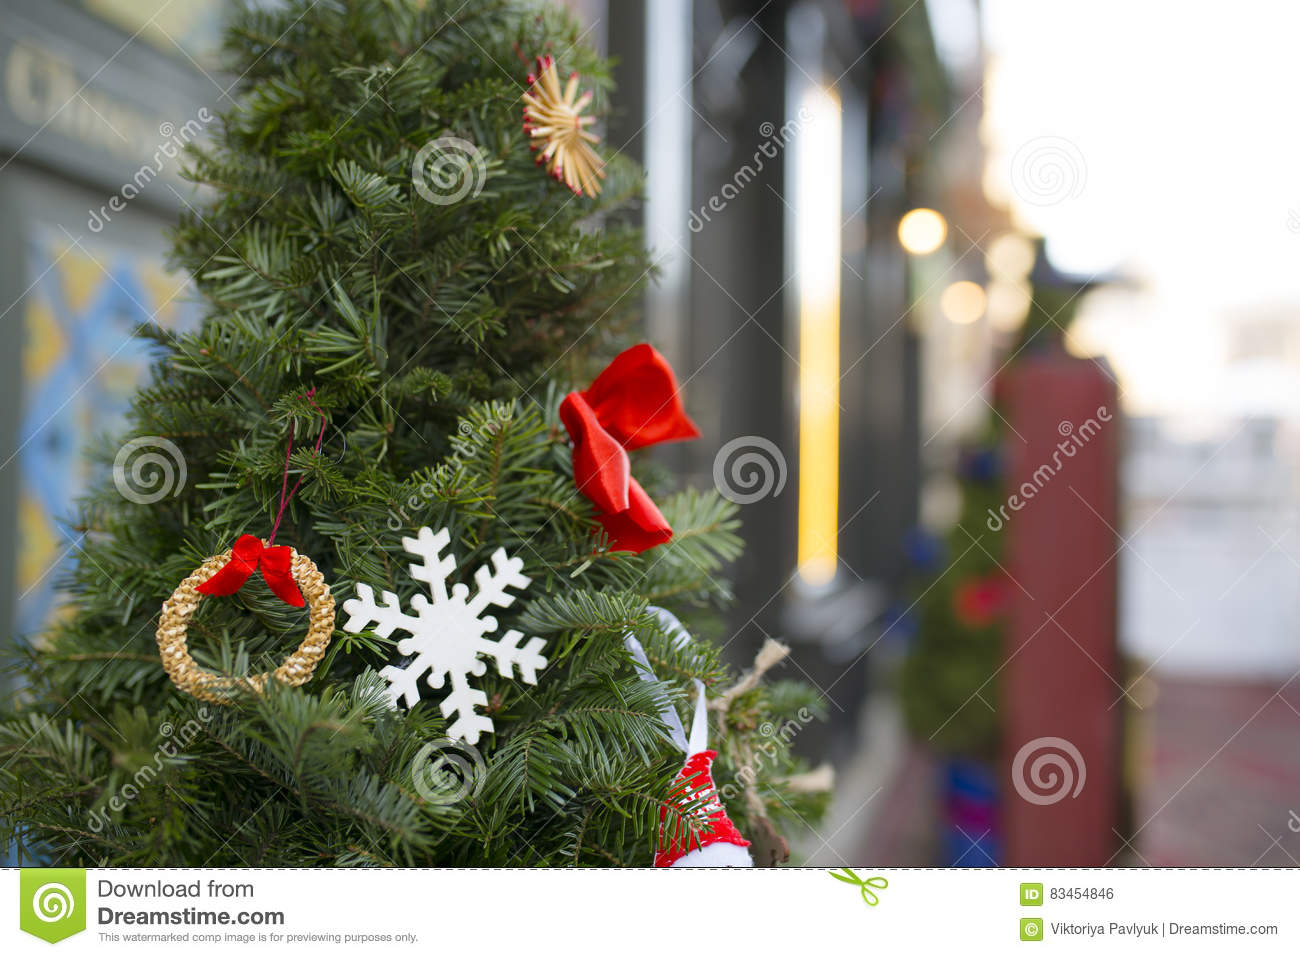 Christmas Tree Decoration Near The Restaurant Outdoor Shoot Stock Photo Image Of Merry Beautiful 83454846